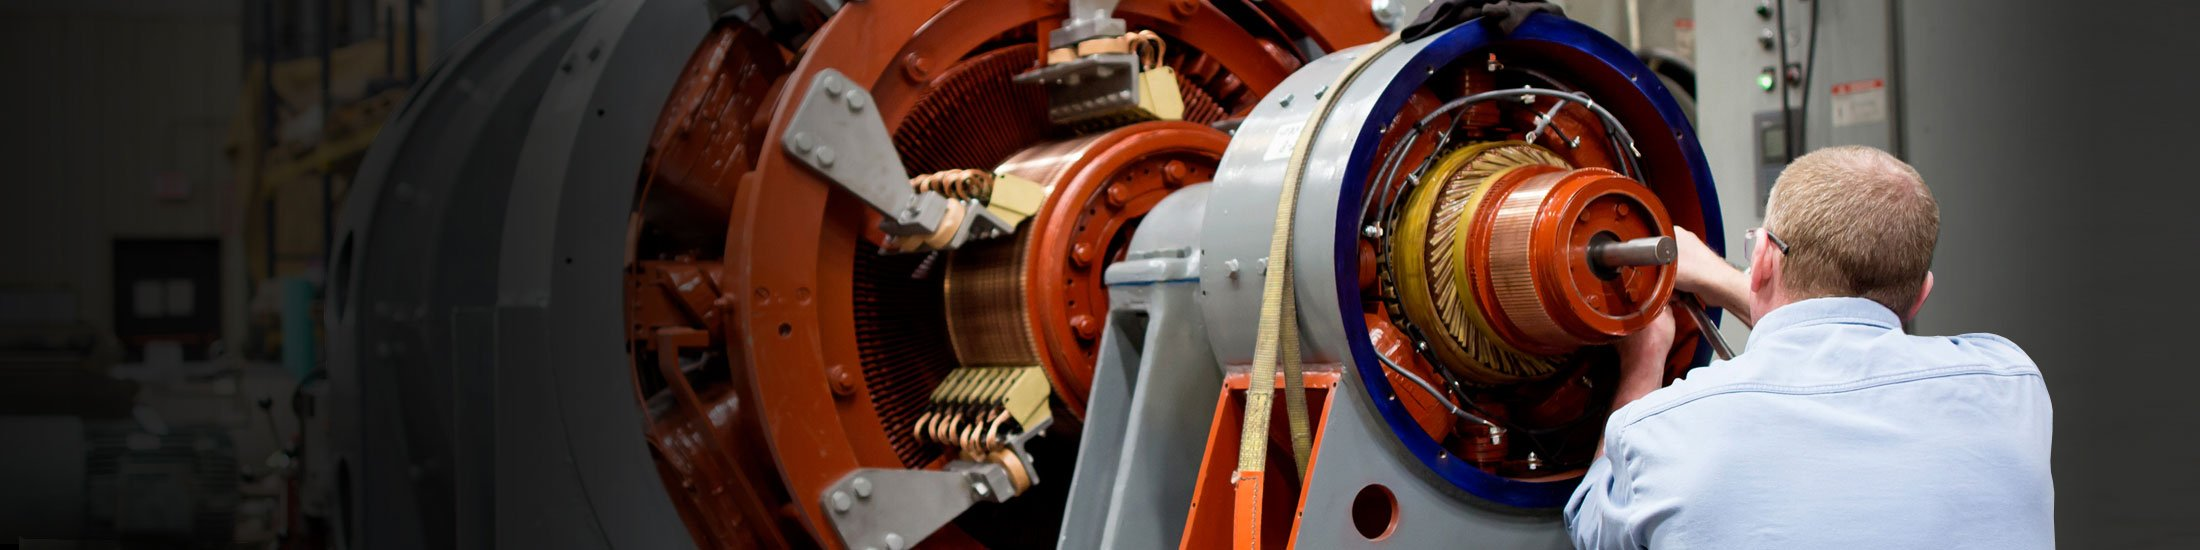 Midwest industrial products services solutions horner for Electric motor repair company